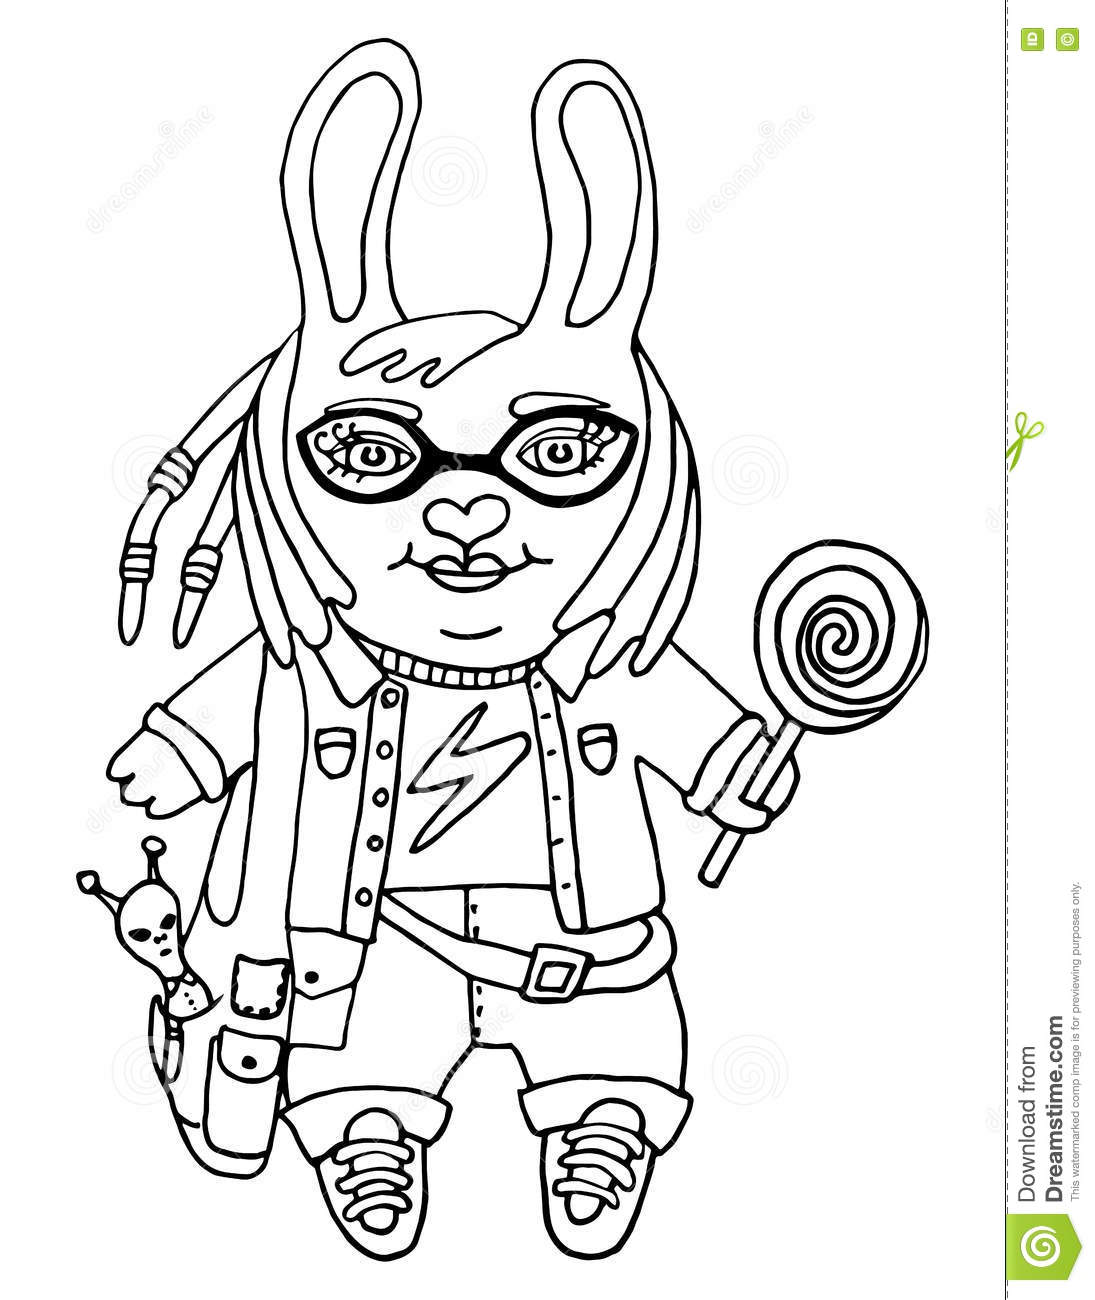 Outline Drawing A Cute Rabbit Girl Nerd In Glasses With Toy And Candy Cartoon Character On